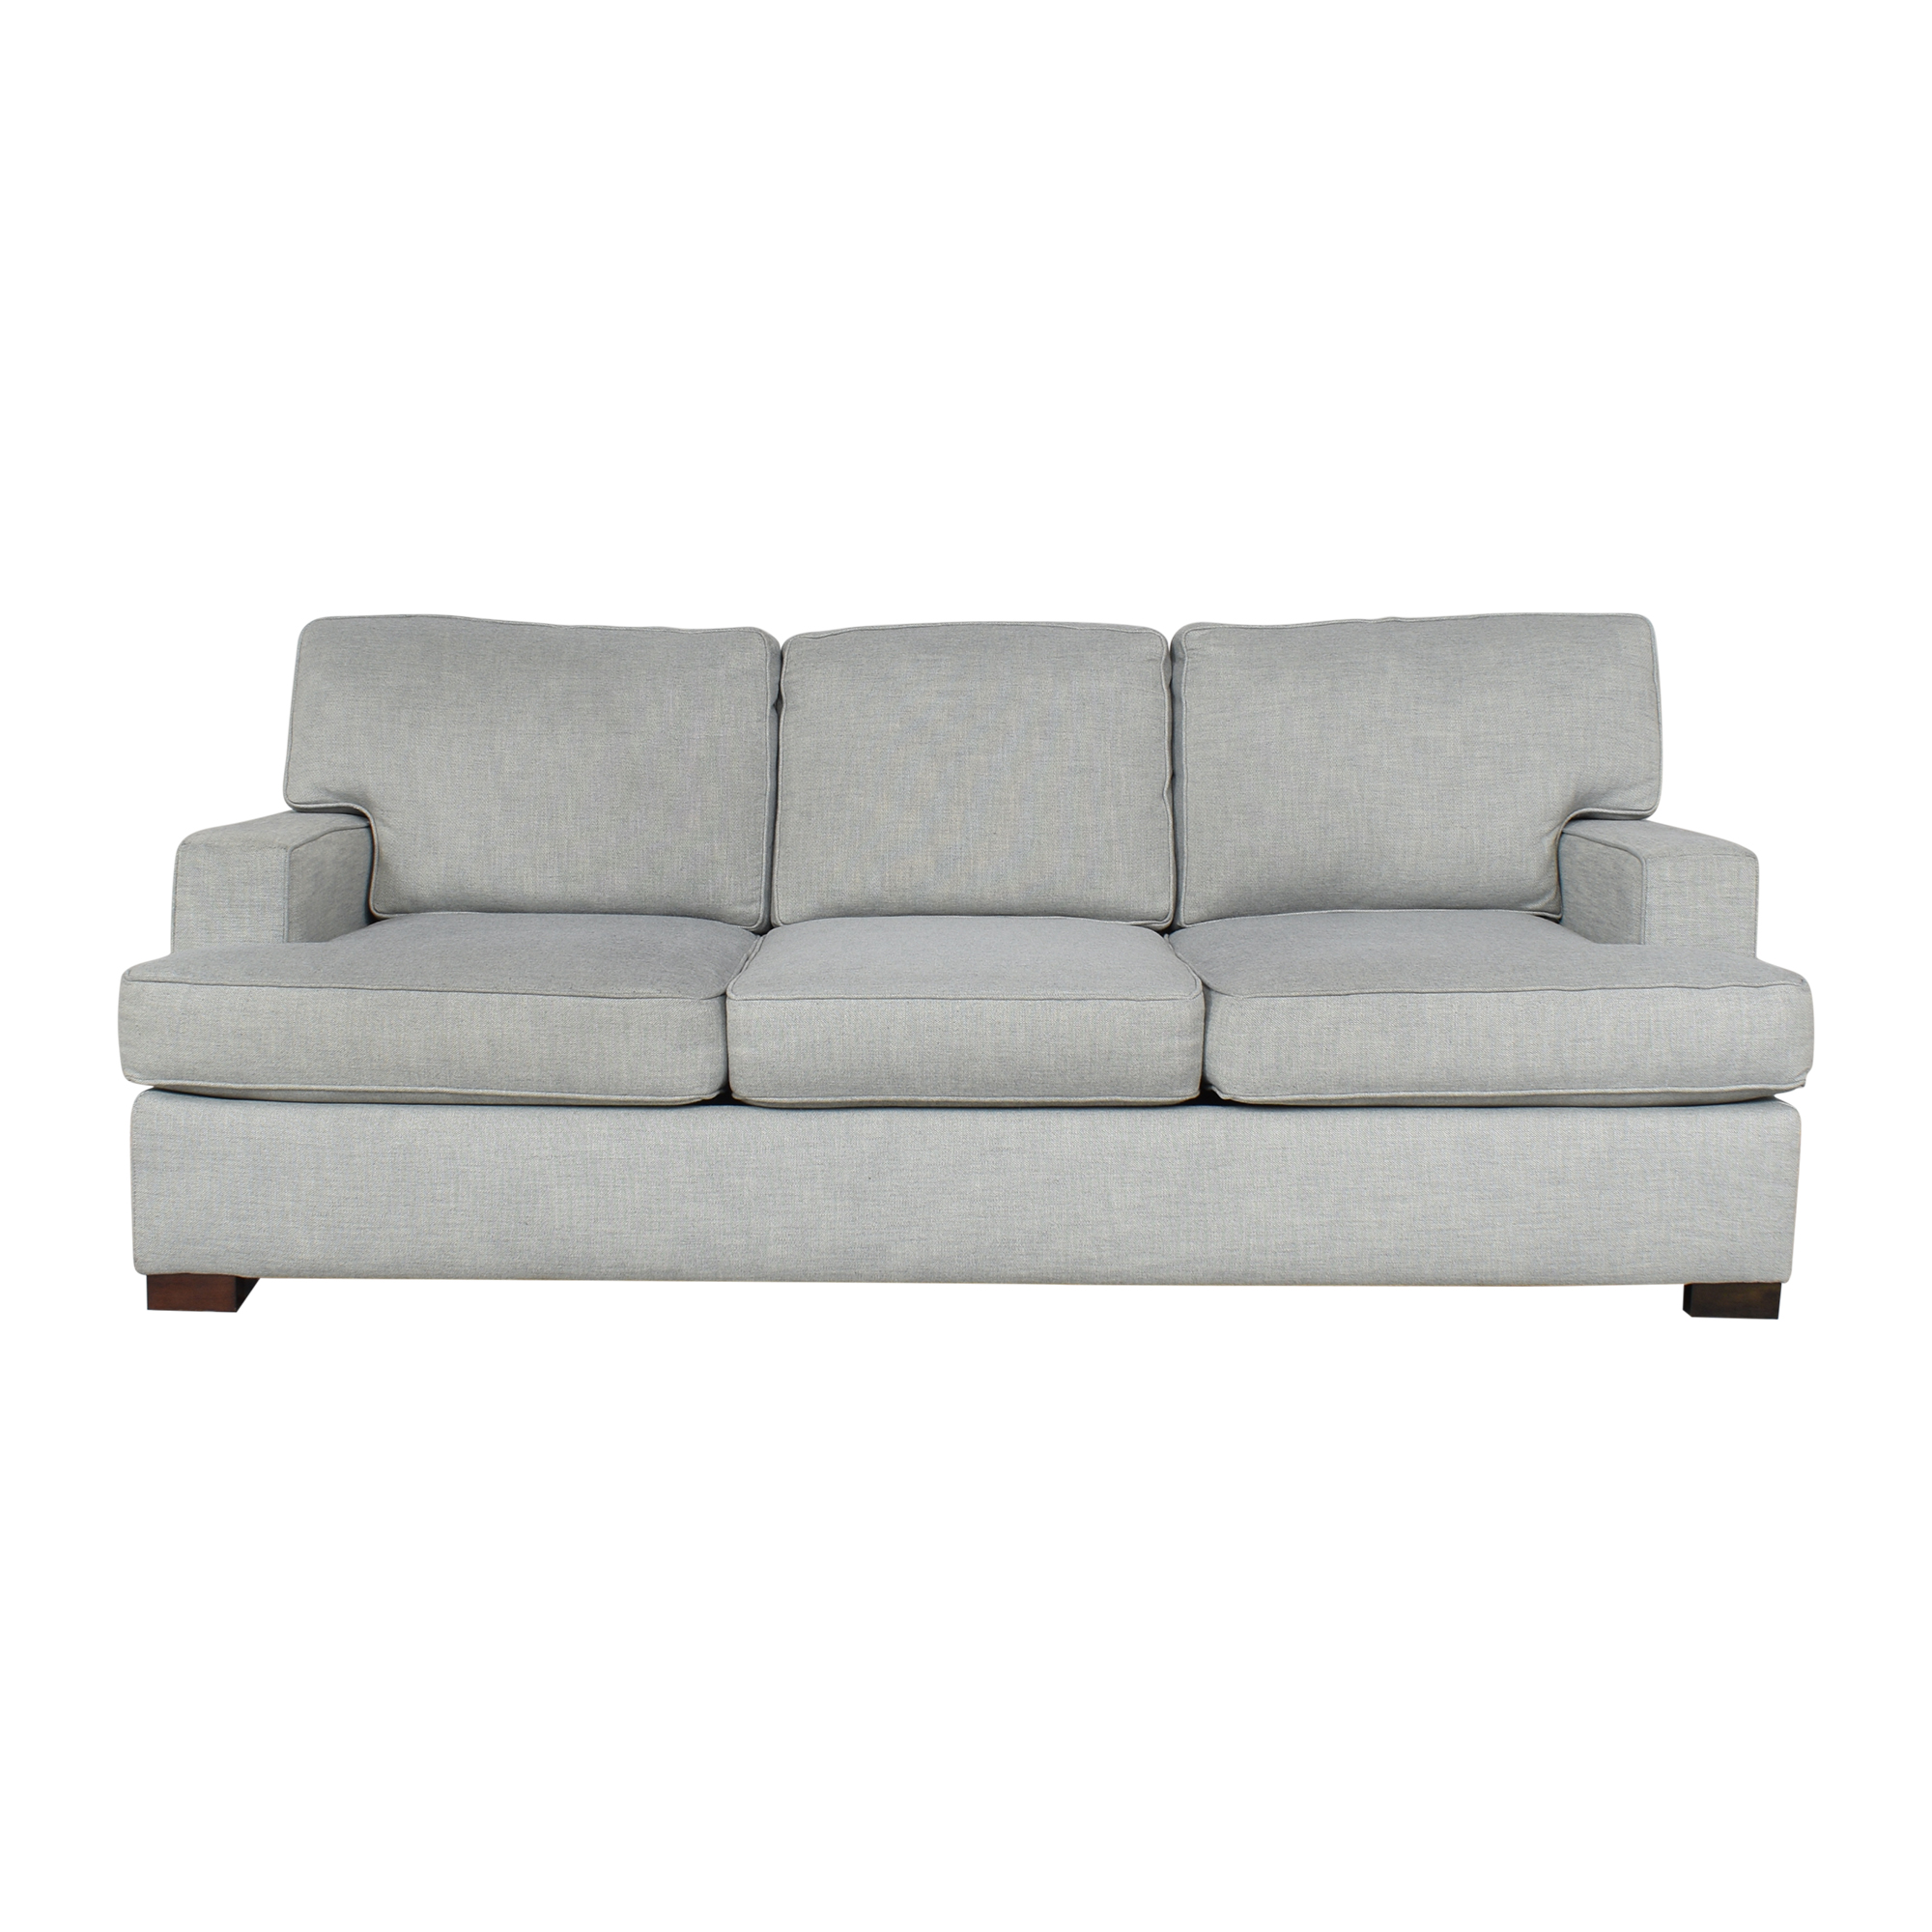 Pottery Barn Pottery Barn Townsend Square Arm Upholstered Sofa for sale